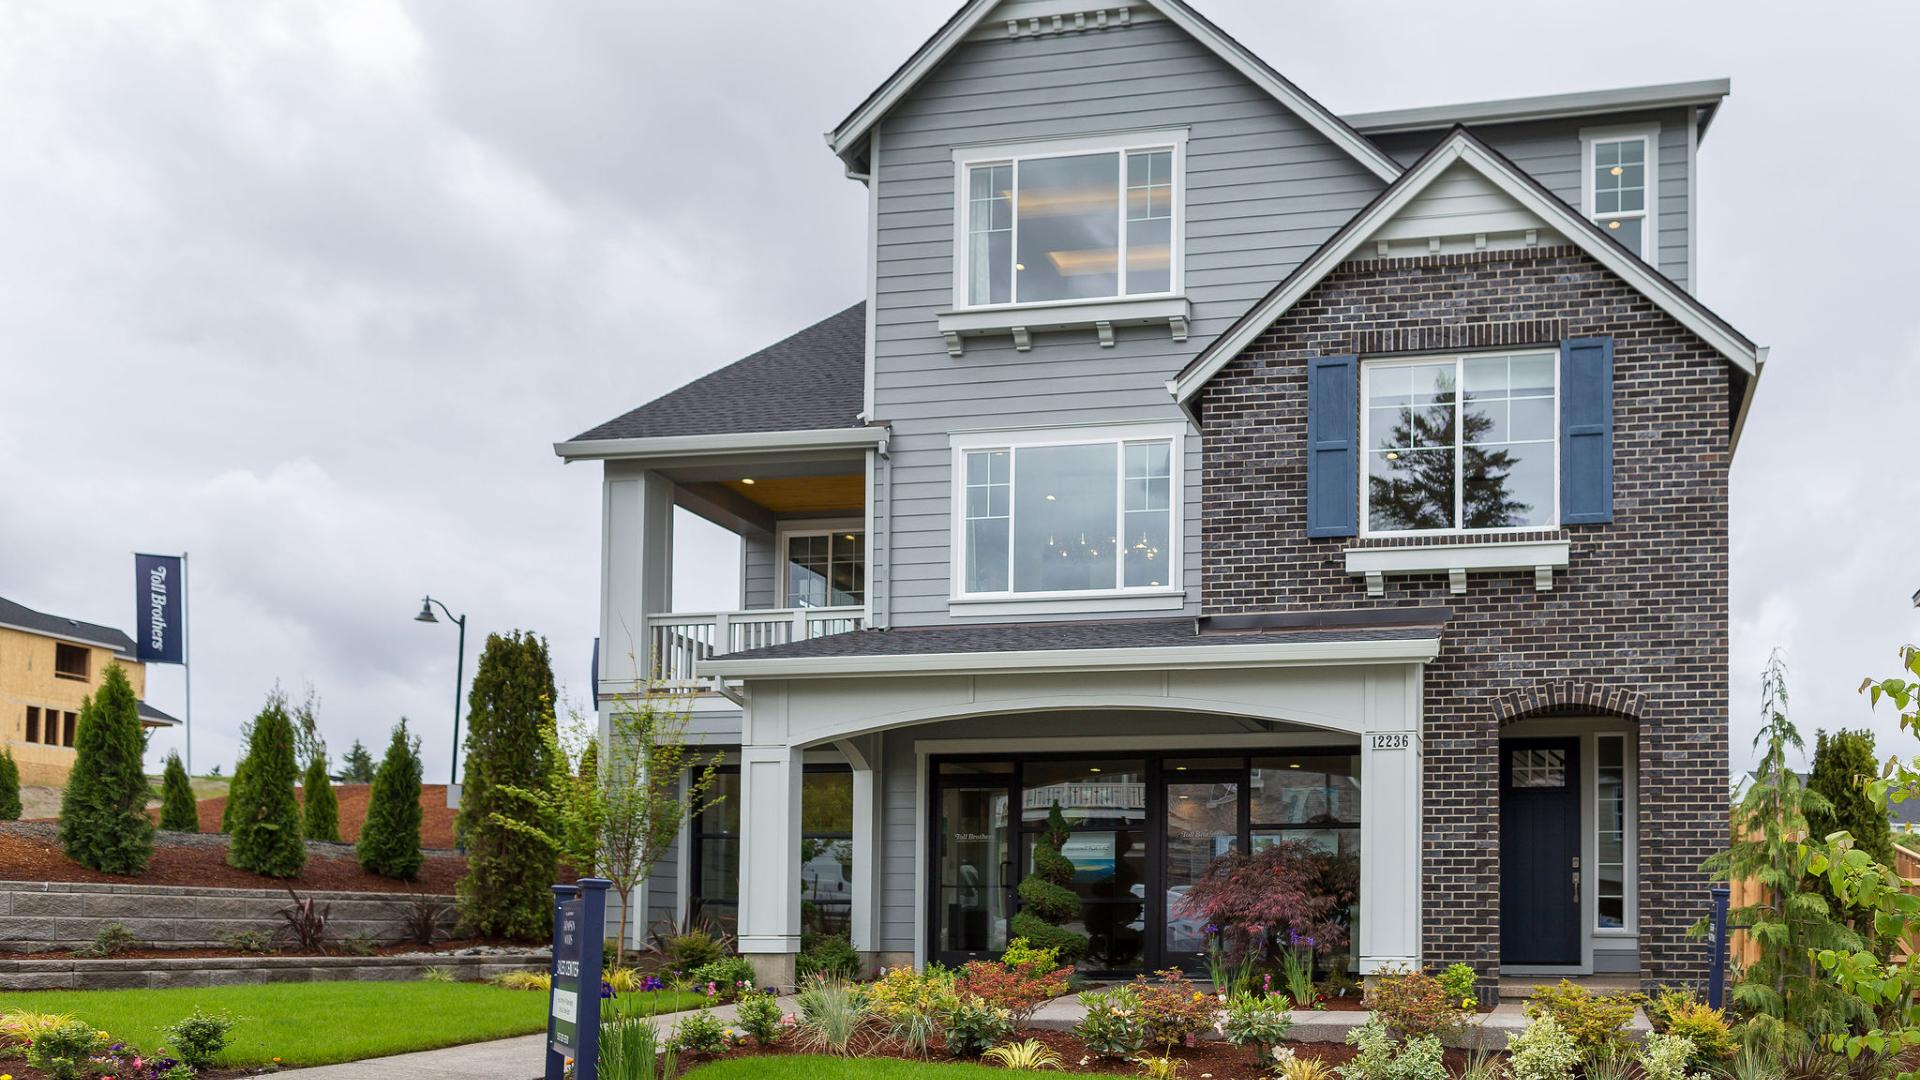 Eugene Traditional exterior view